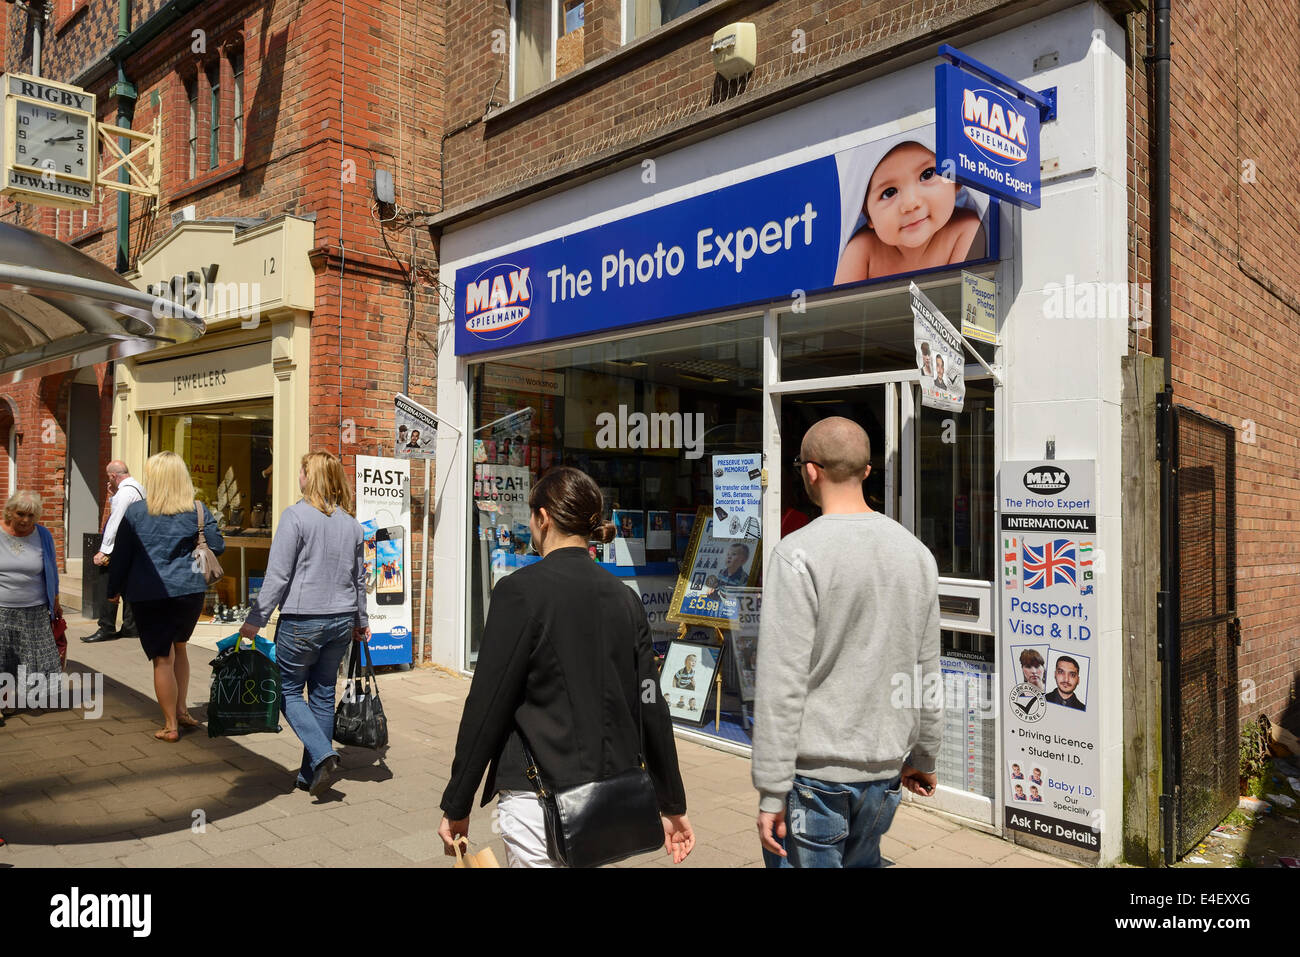 Des gens devant un magasin de photo Max Spielmann Photo Stock